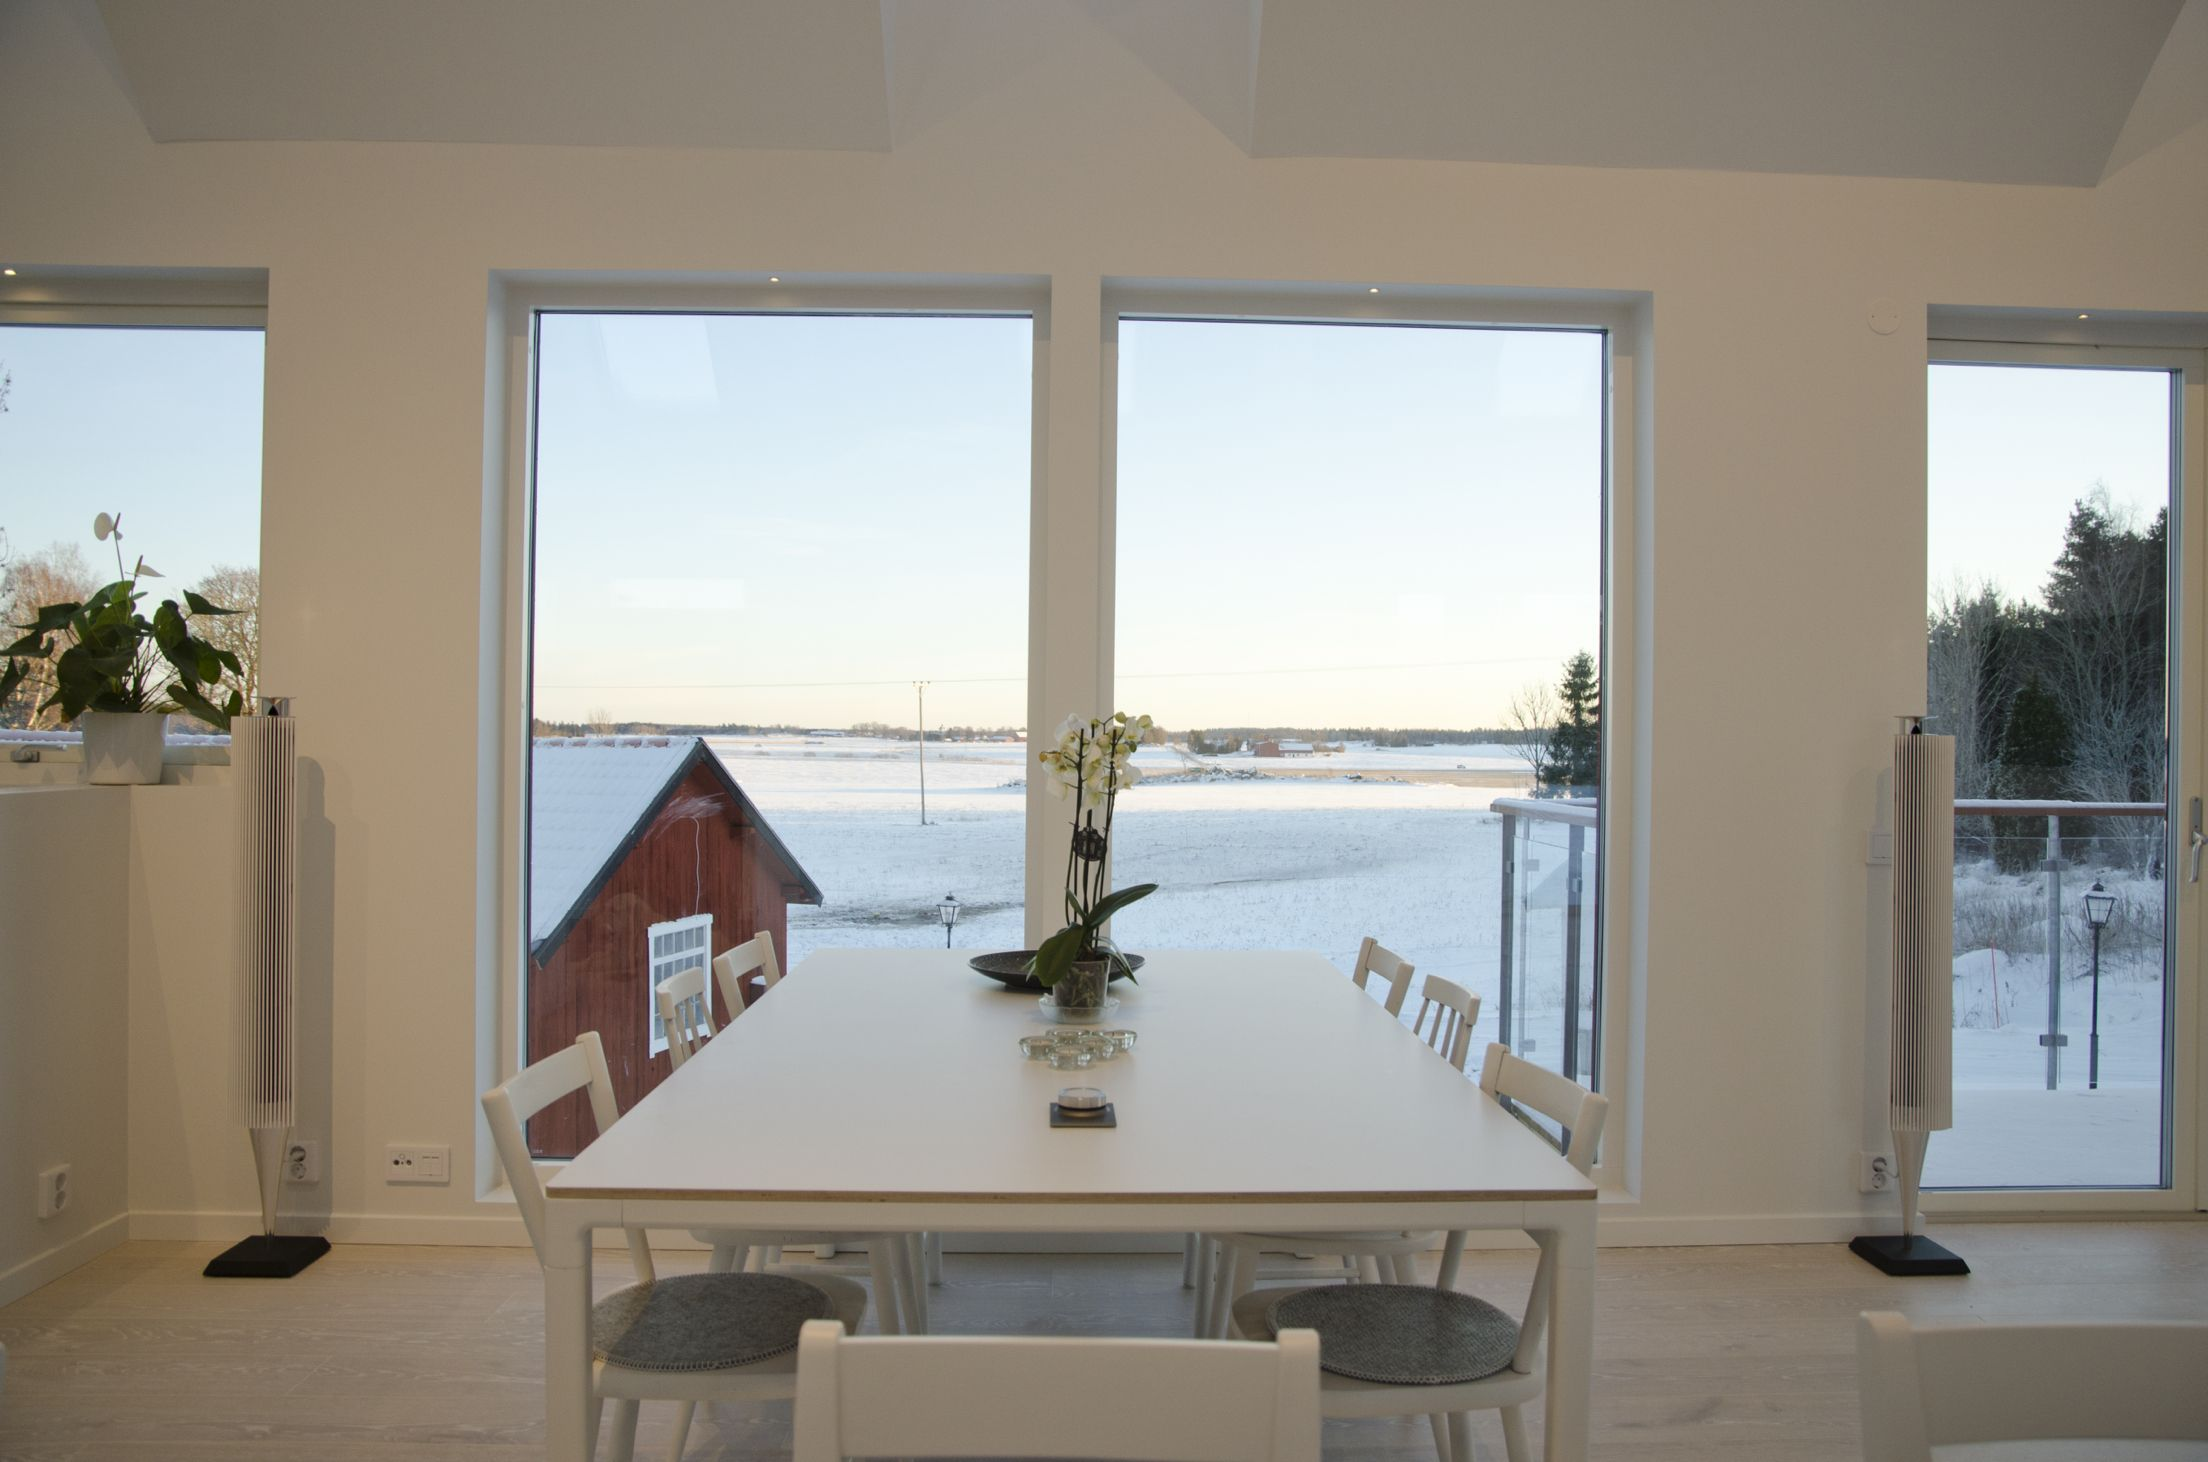 Scandinavian interior design with a view. Dining table